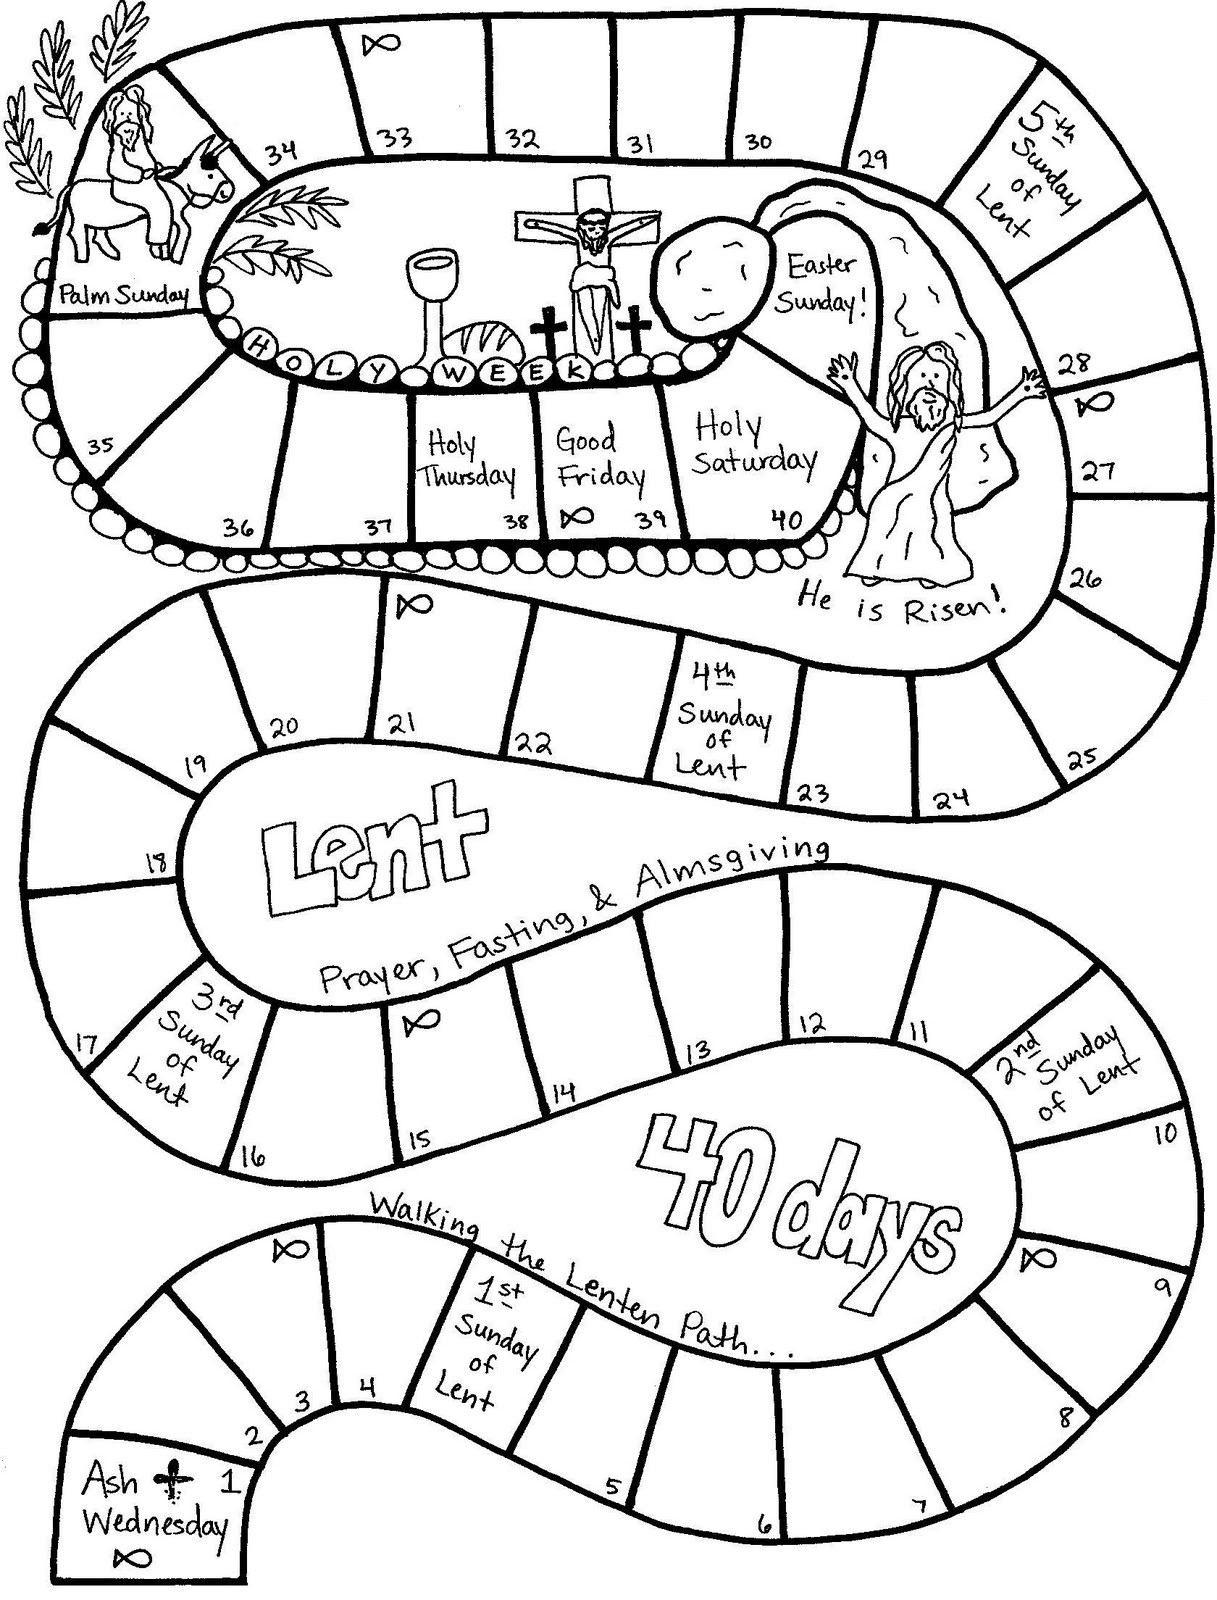 1217x1600 Lent Coloring Pages Best Coloring Pages For Kids Lent Coloring